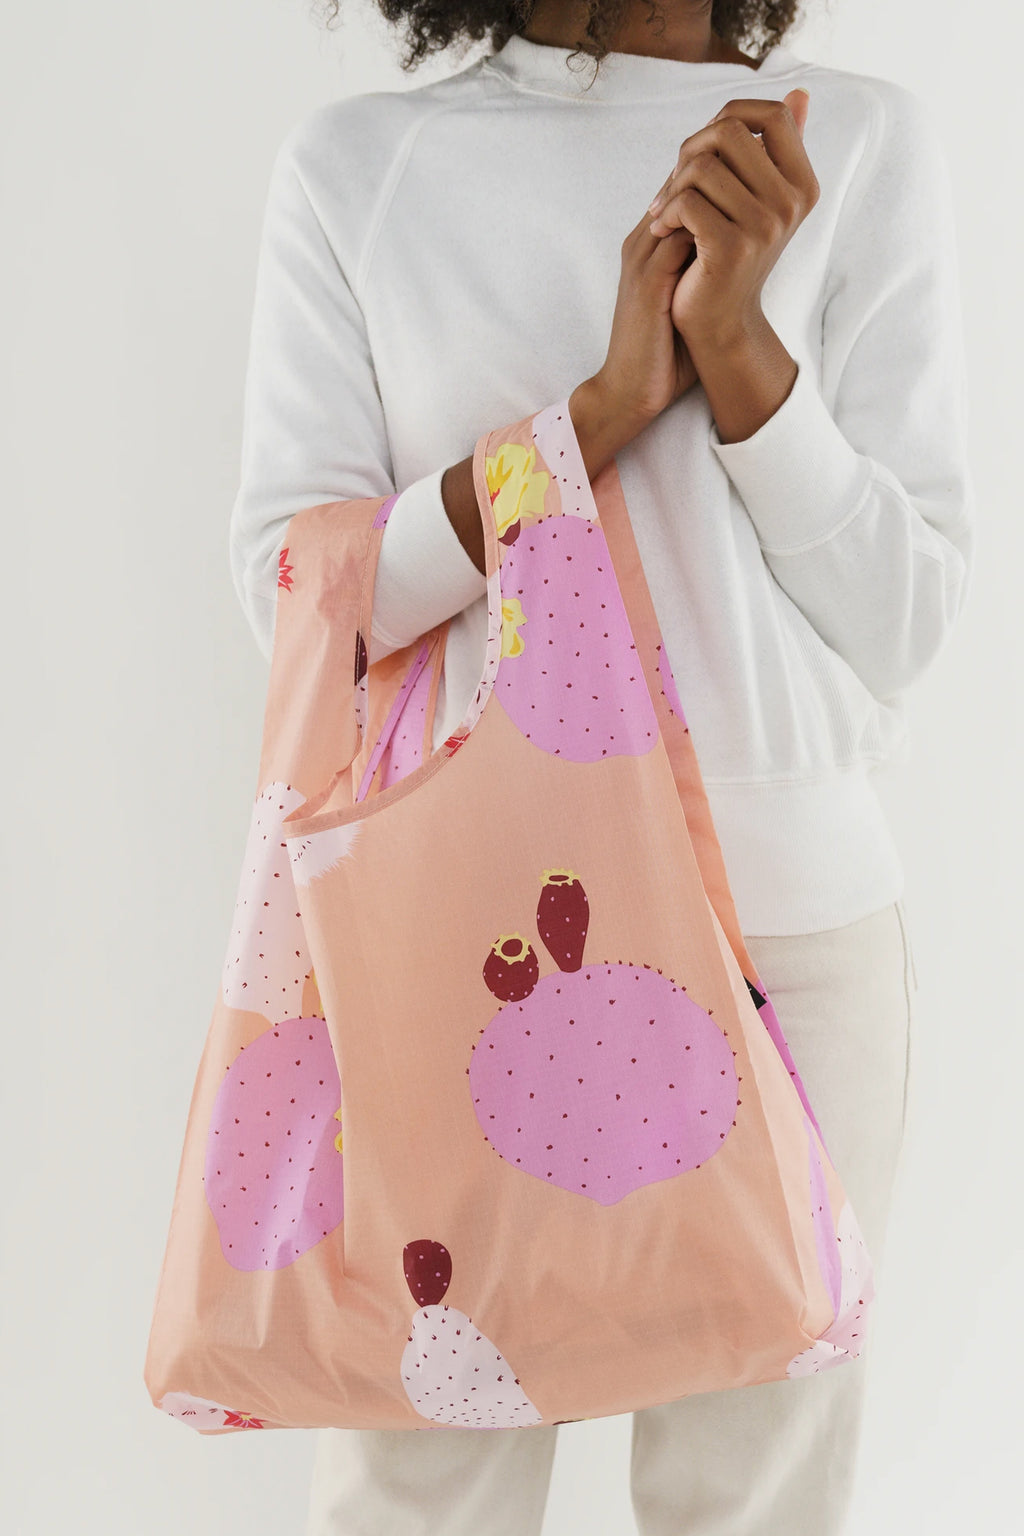 Baggu Pink Cactus Flower Reusable Bag - The Mercantile London